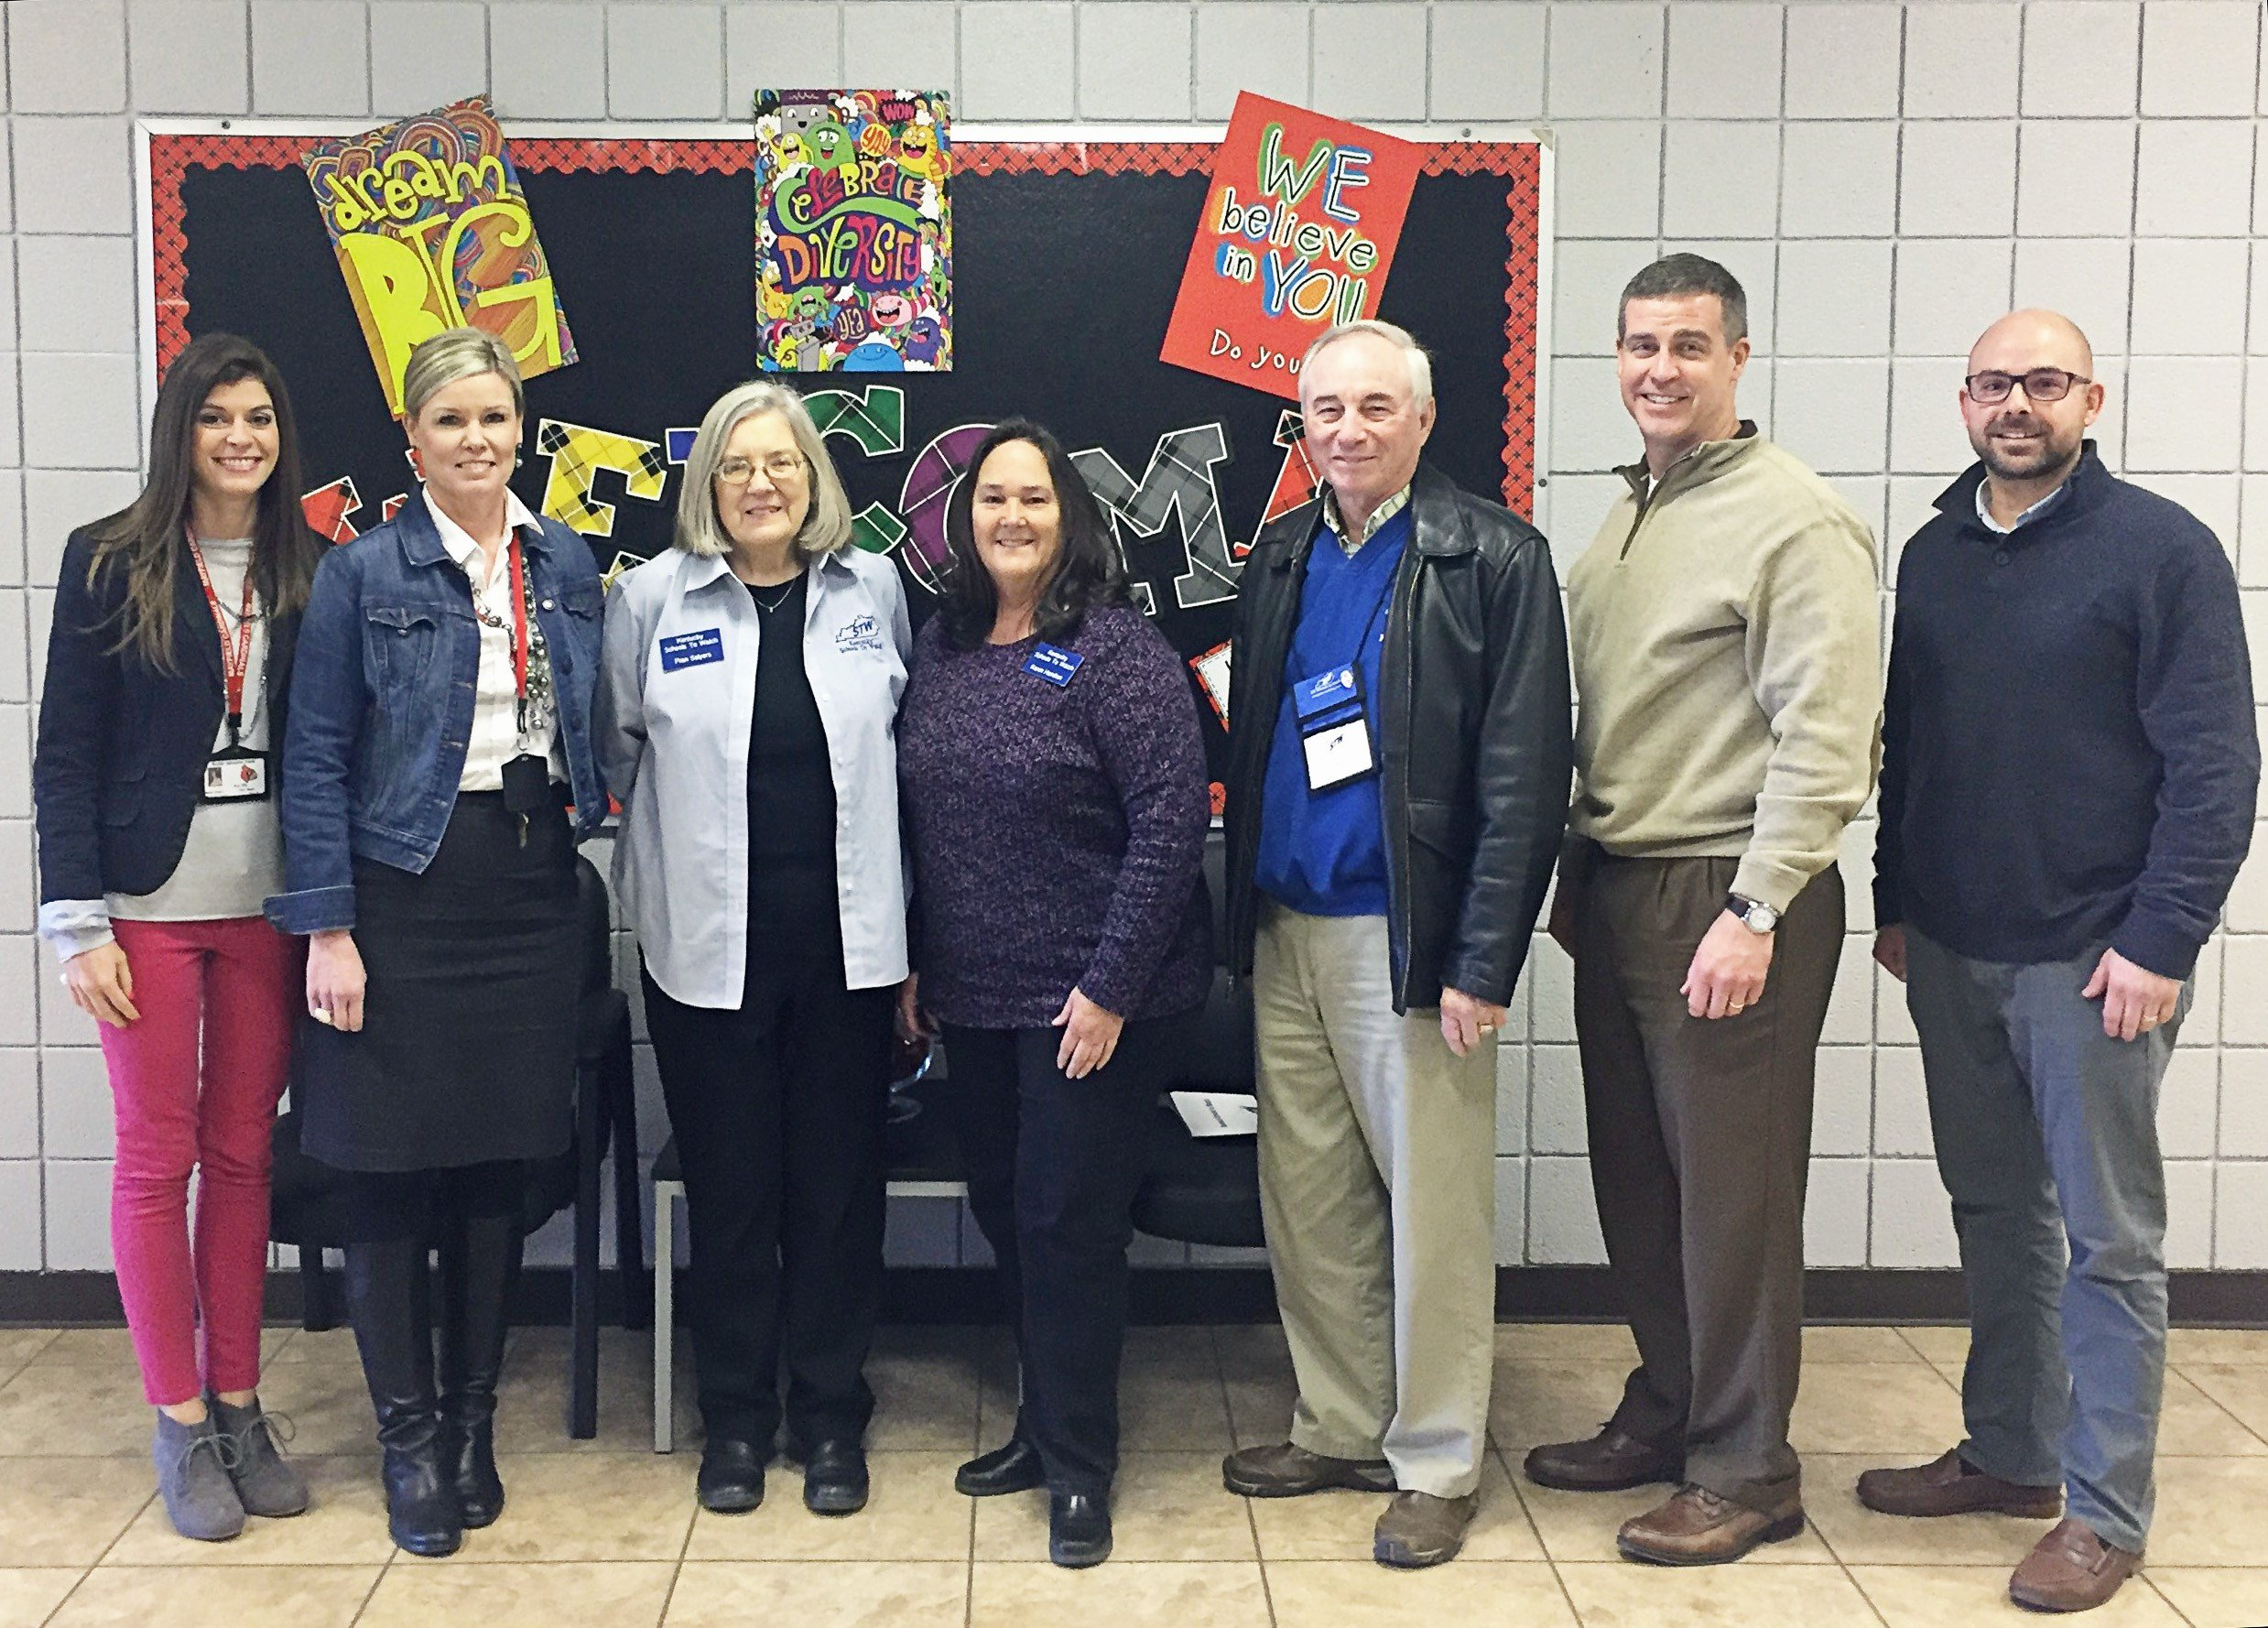 This photo shows, from the left, Mayfield Middle School Assistant Principal Kelly Stinson, Principal Kim Reed, and National Schools to Watch Review team members Fran Salyers, Karen Hamilton, Steve Tribble, David Ward and Tim Bundren.